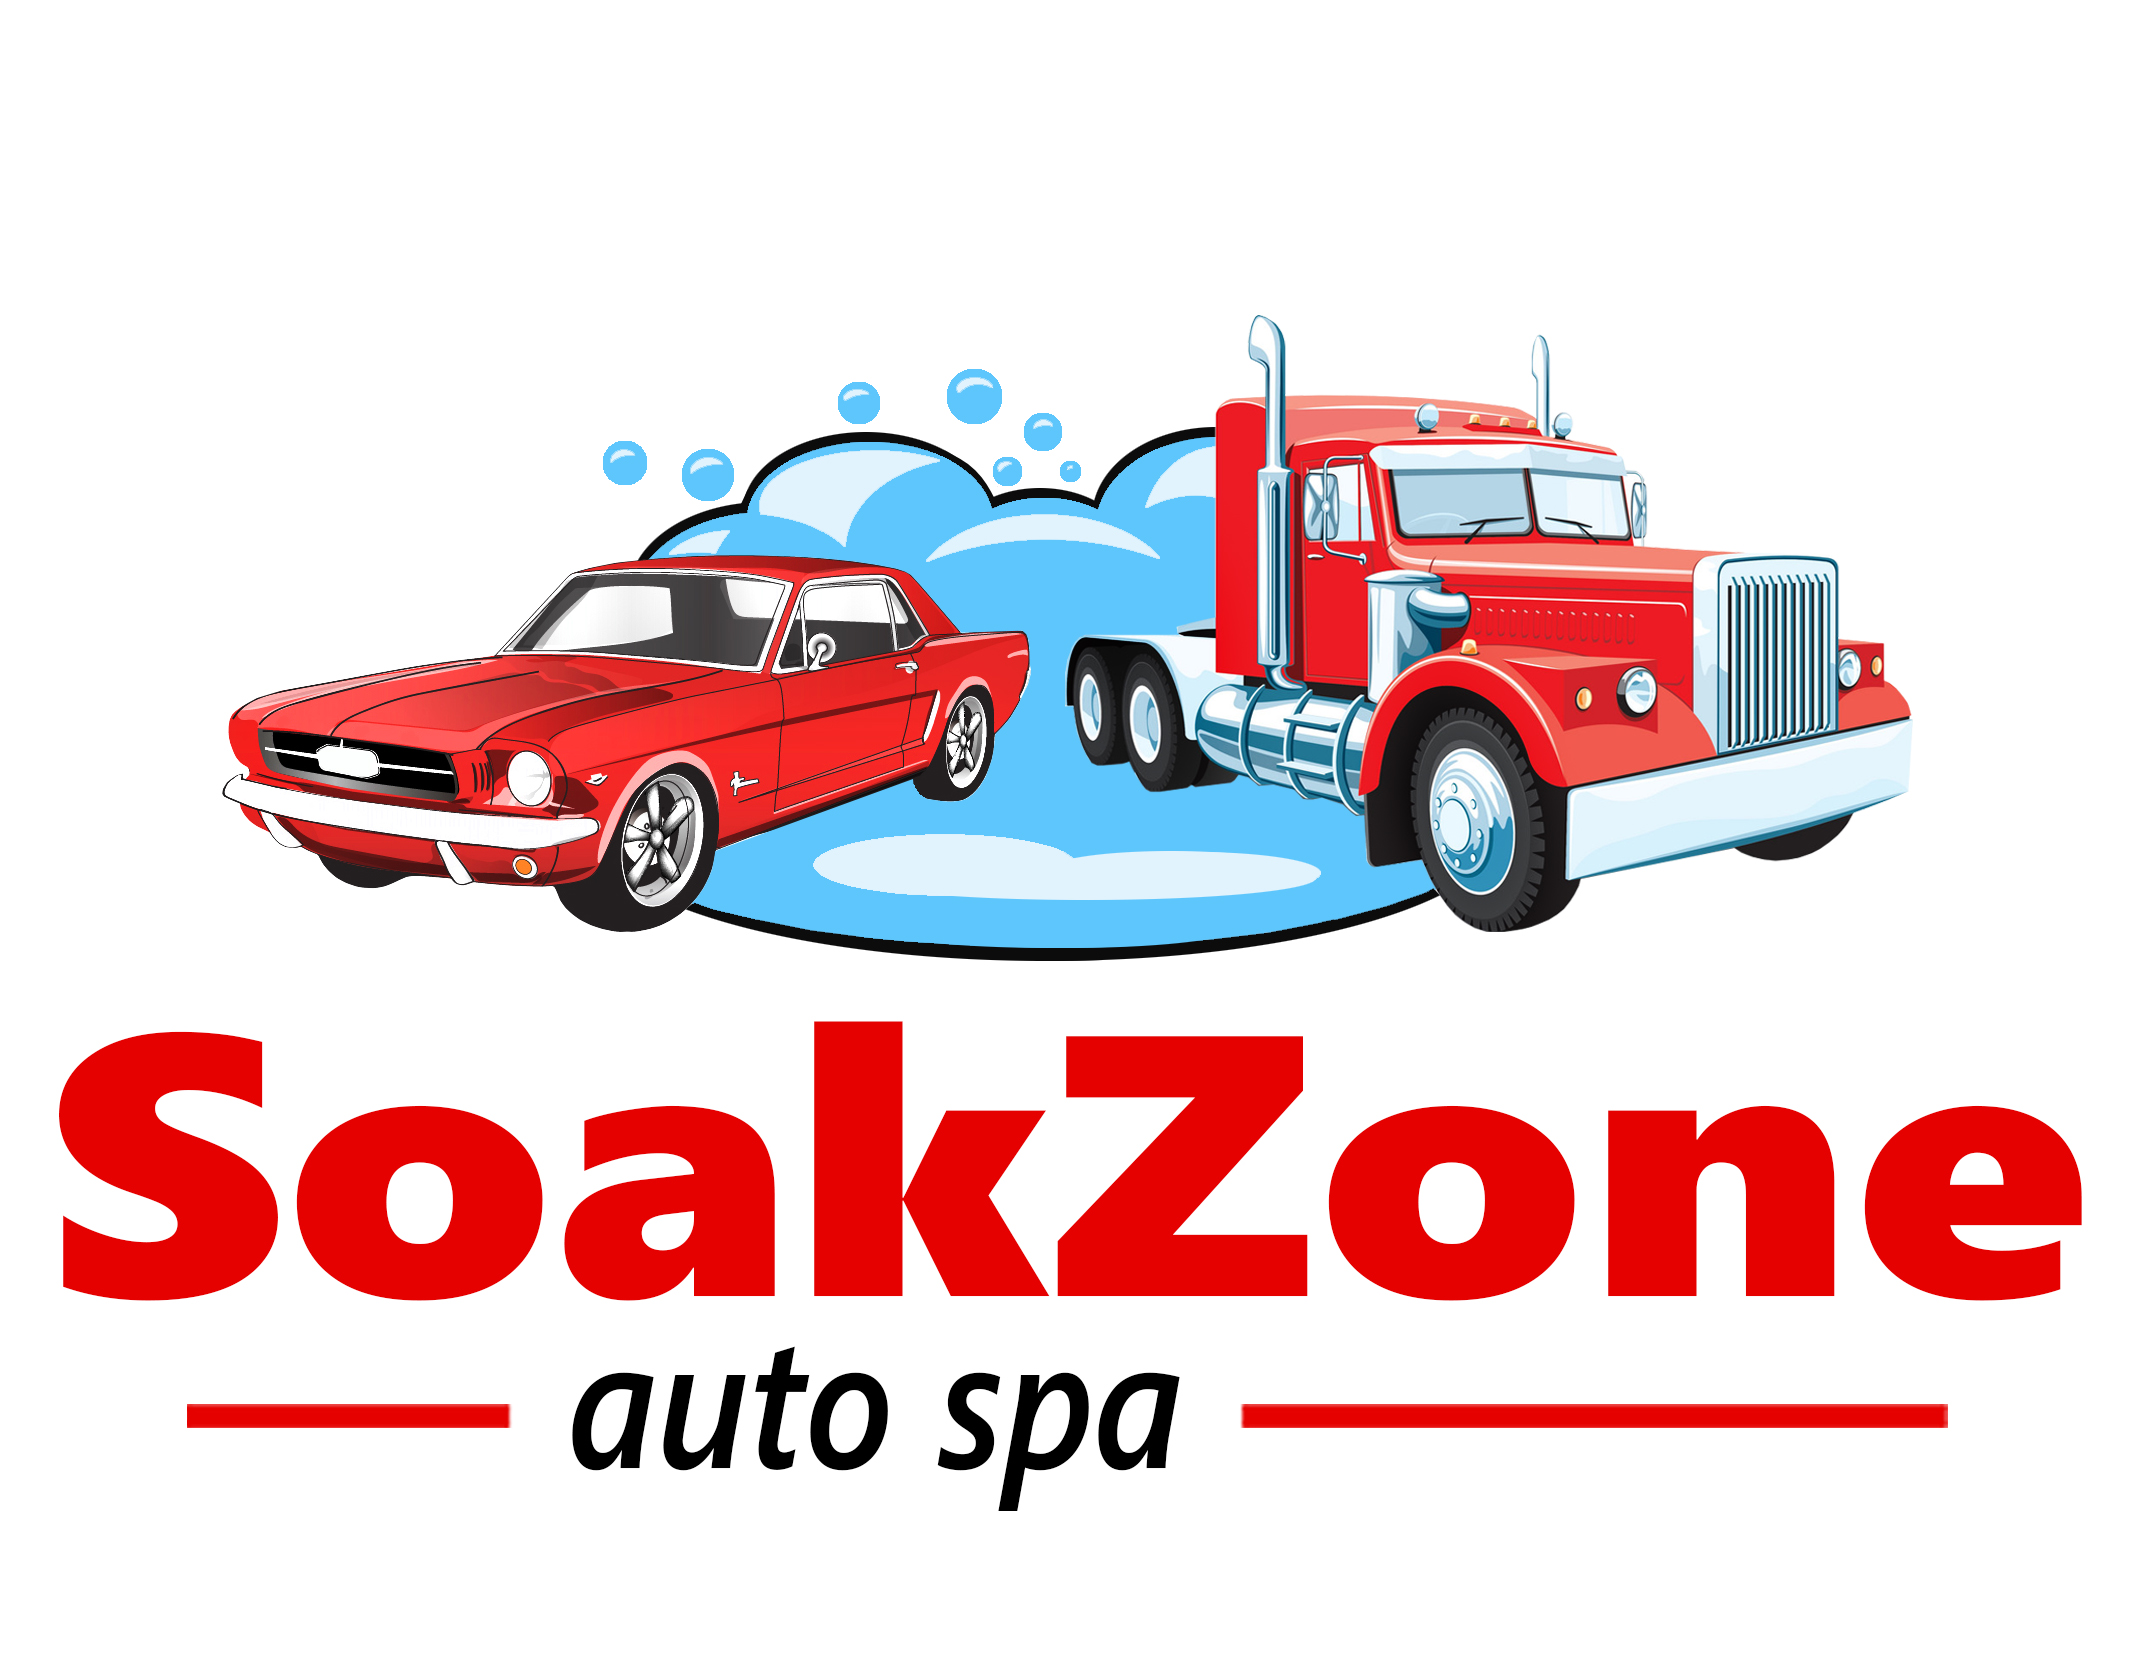 SoakZone Auto Spa